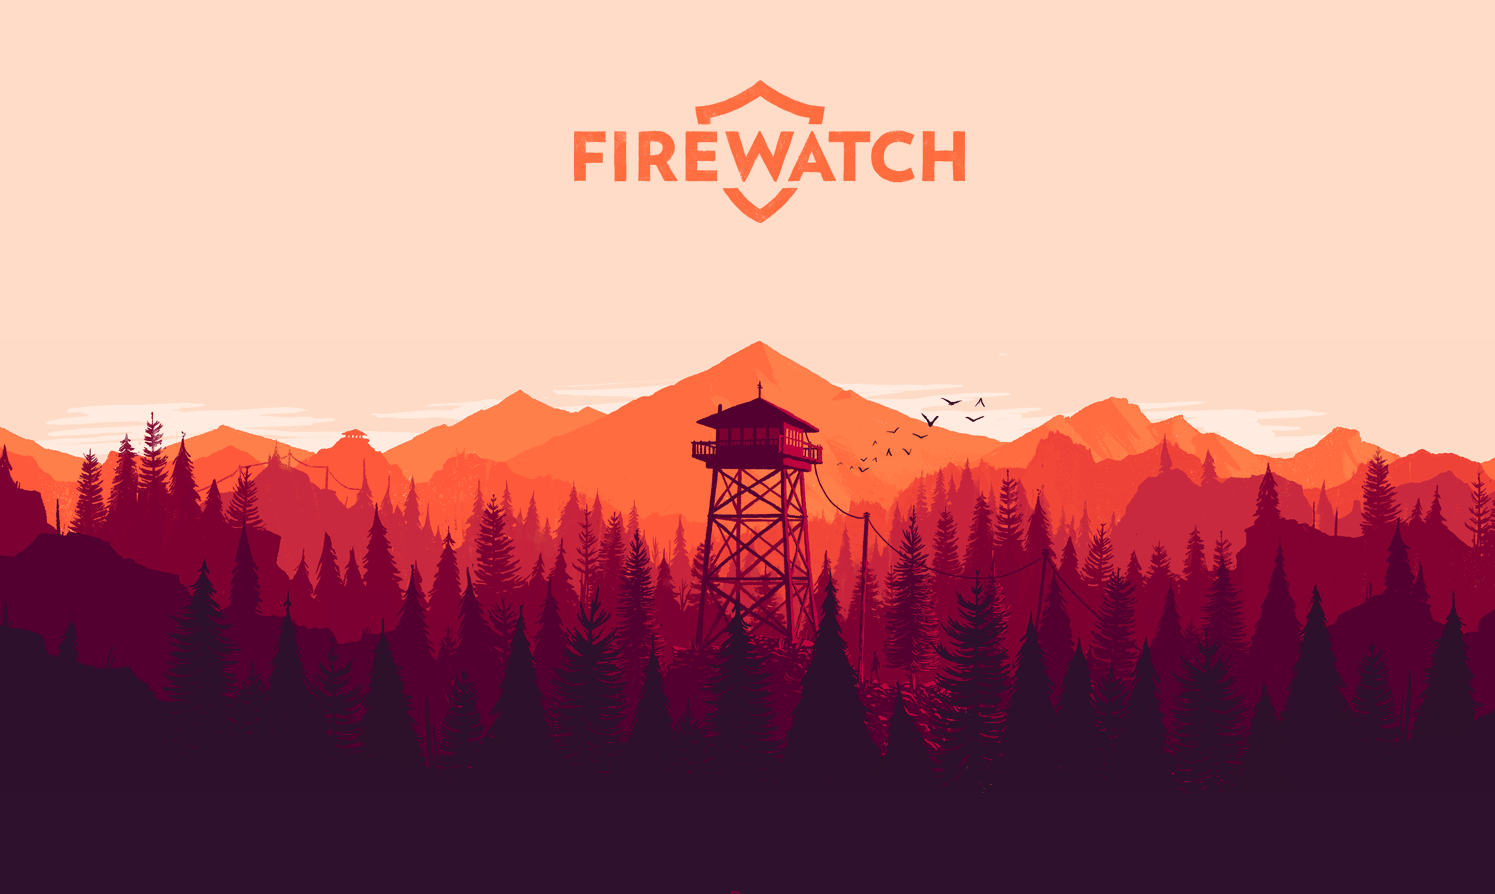 """Firewatch"" Release Date Announced"